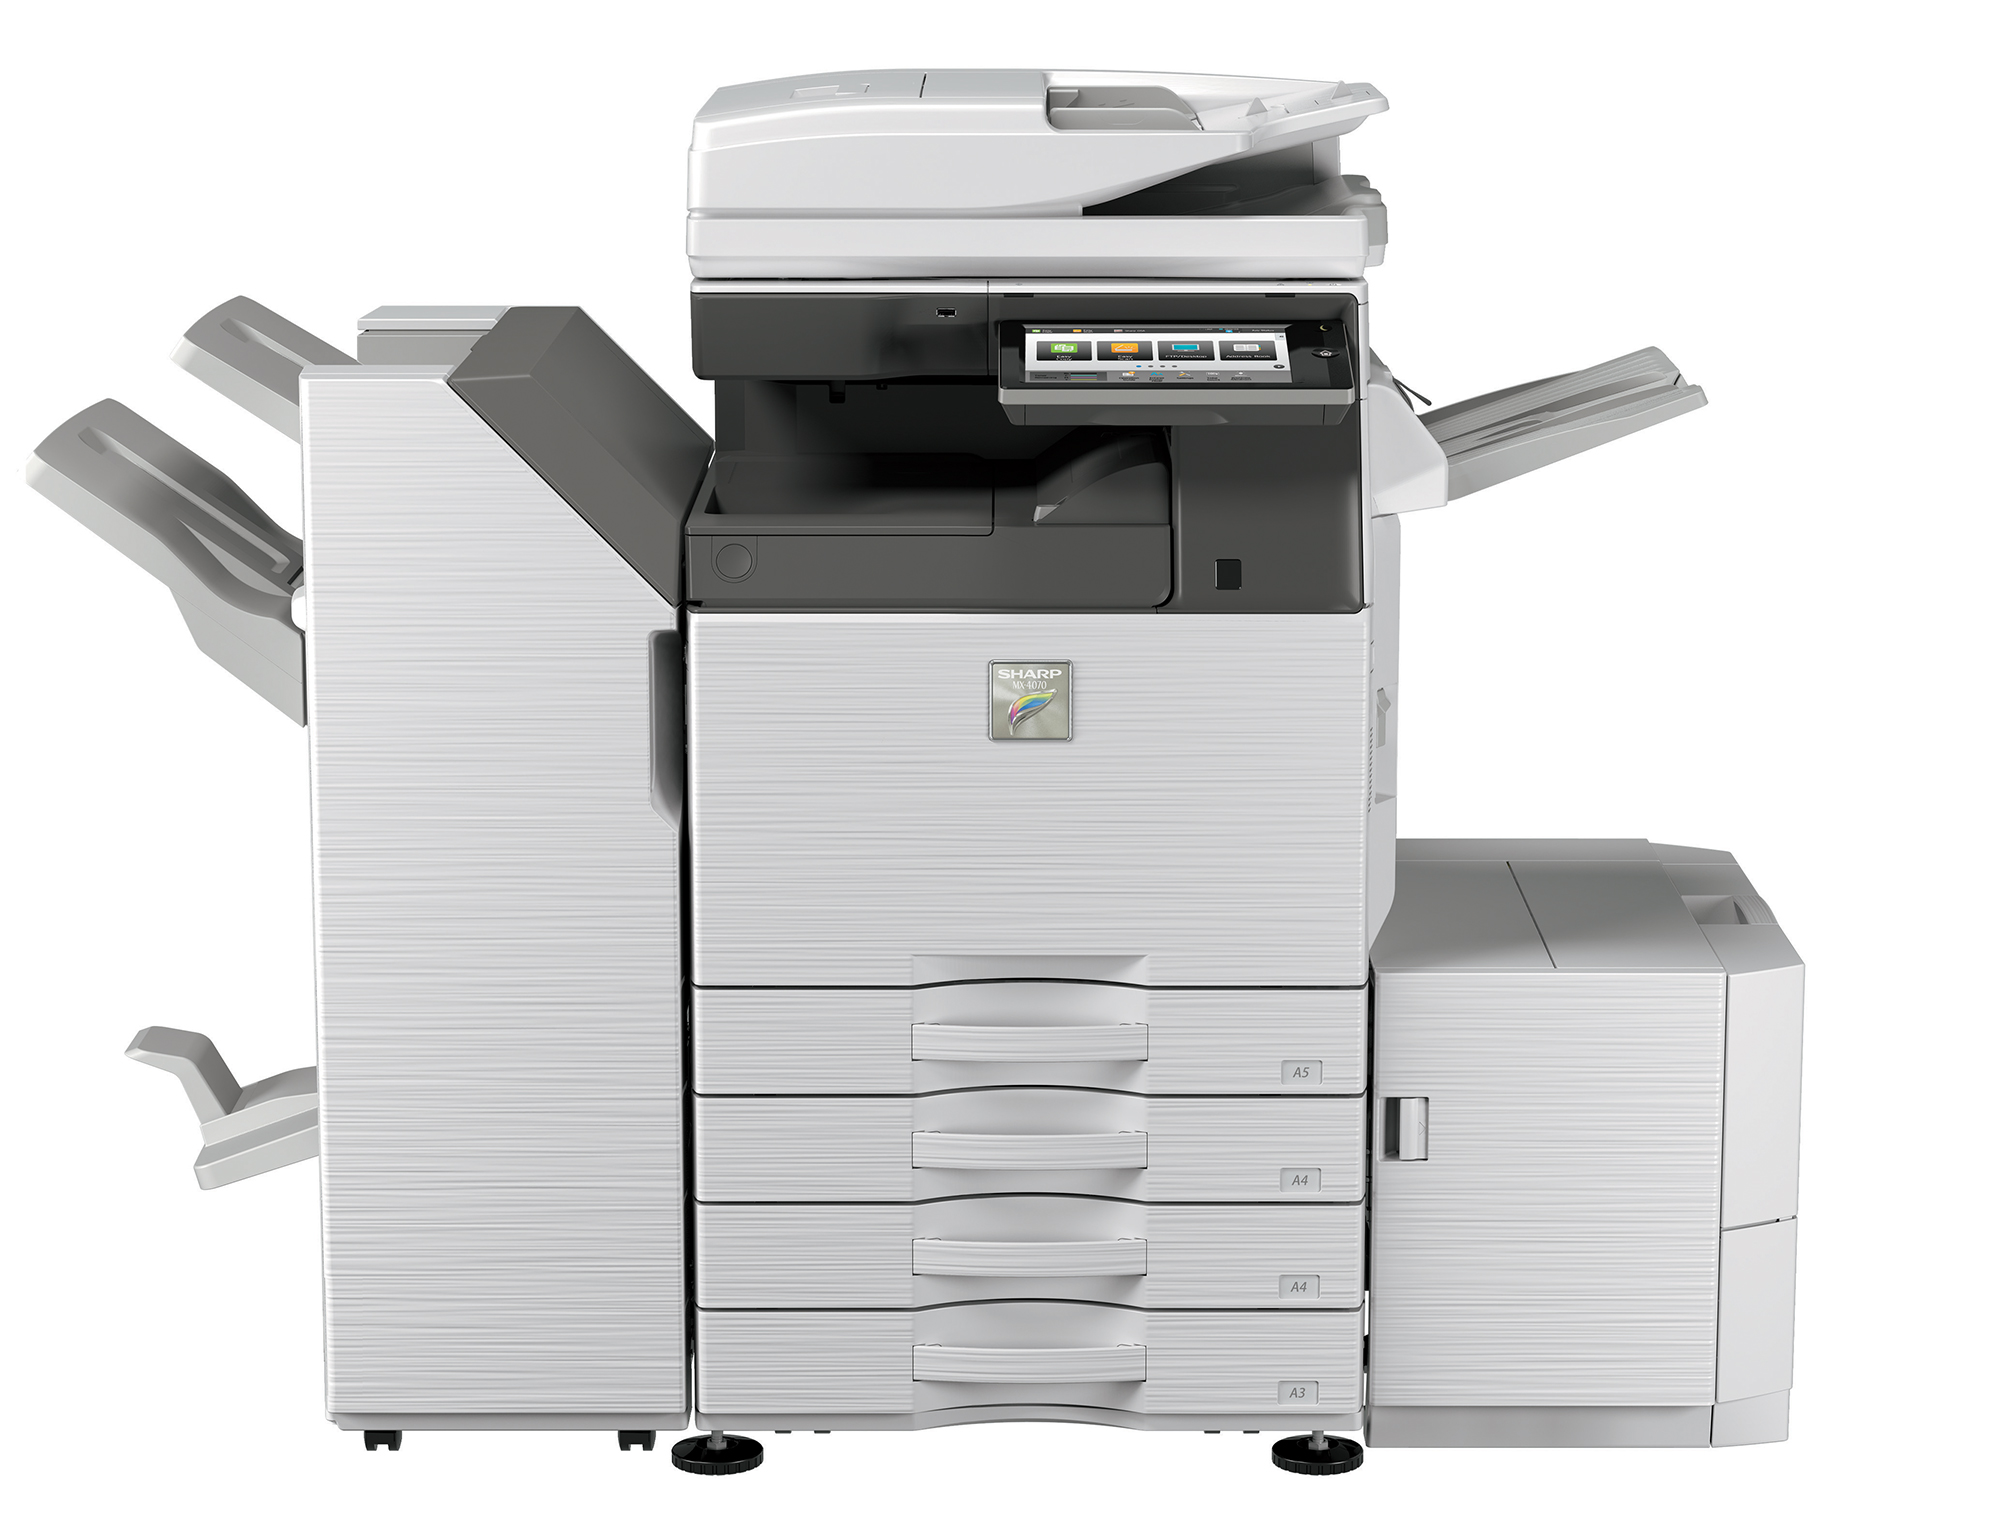 MX-4071 Color MFP (Scan Centric – Advanced Series)